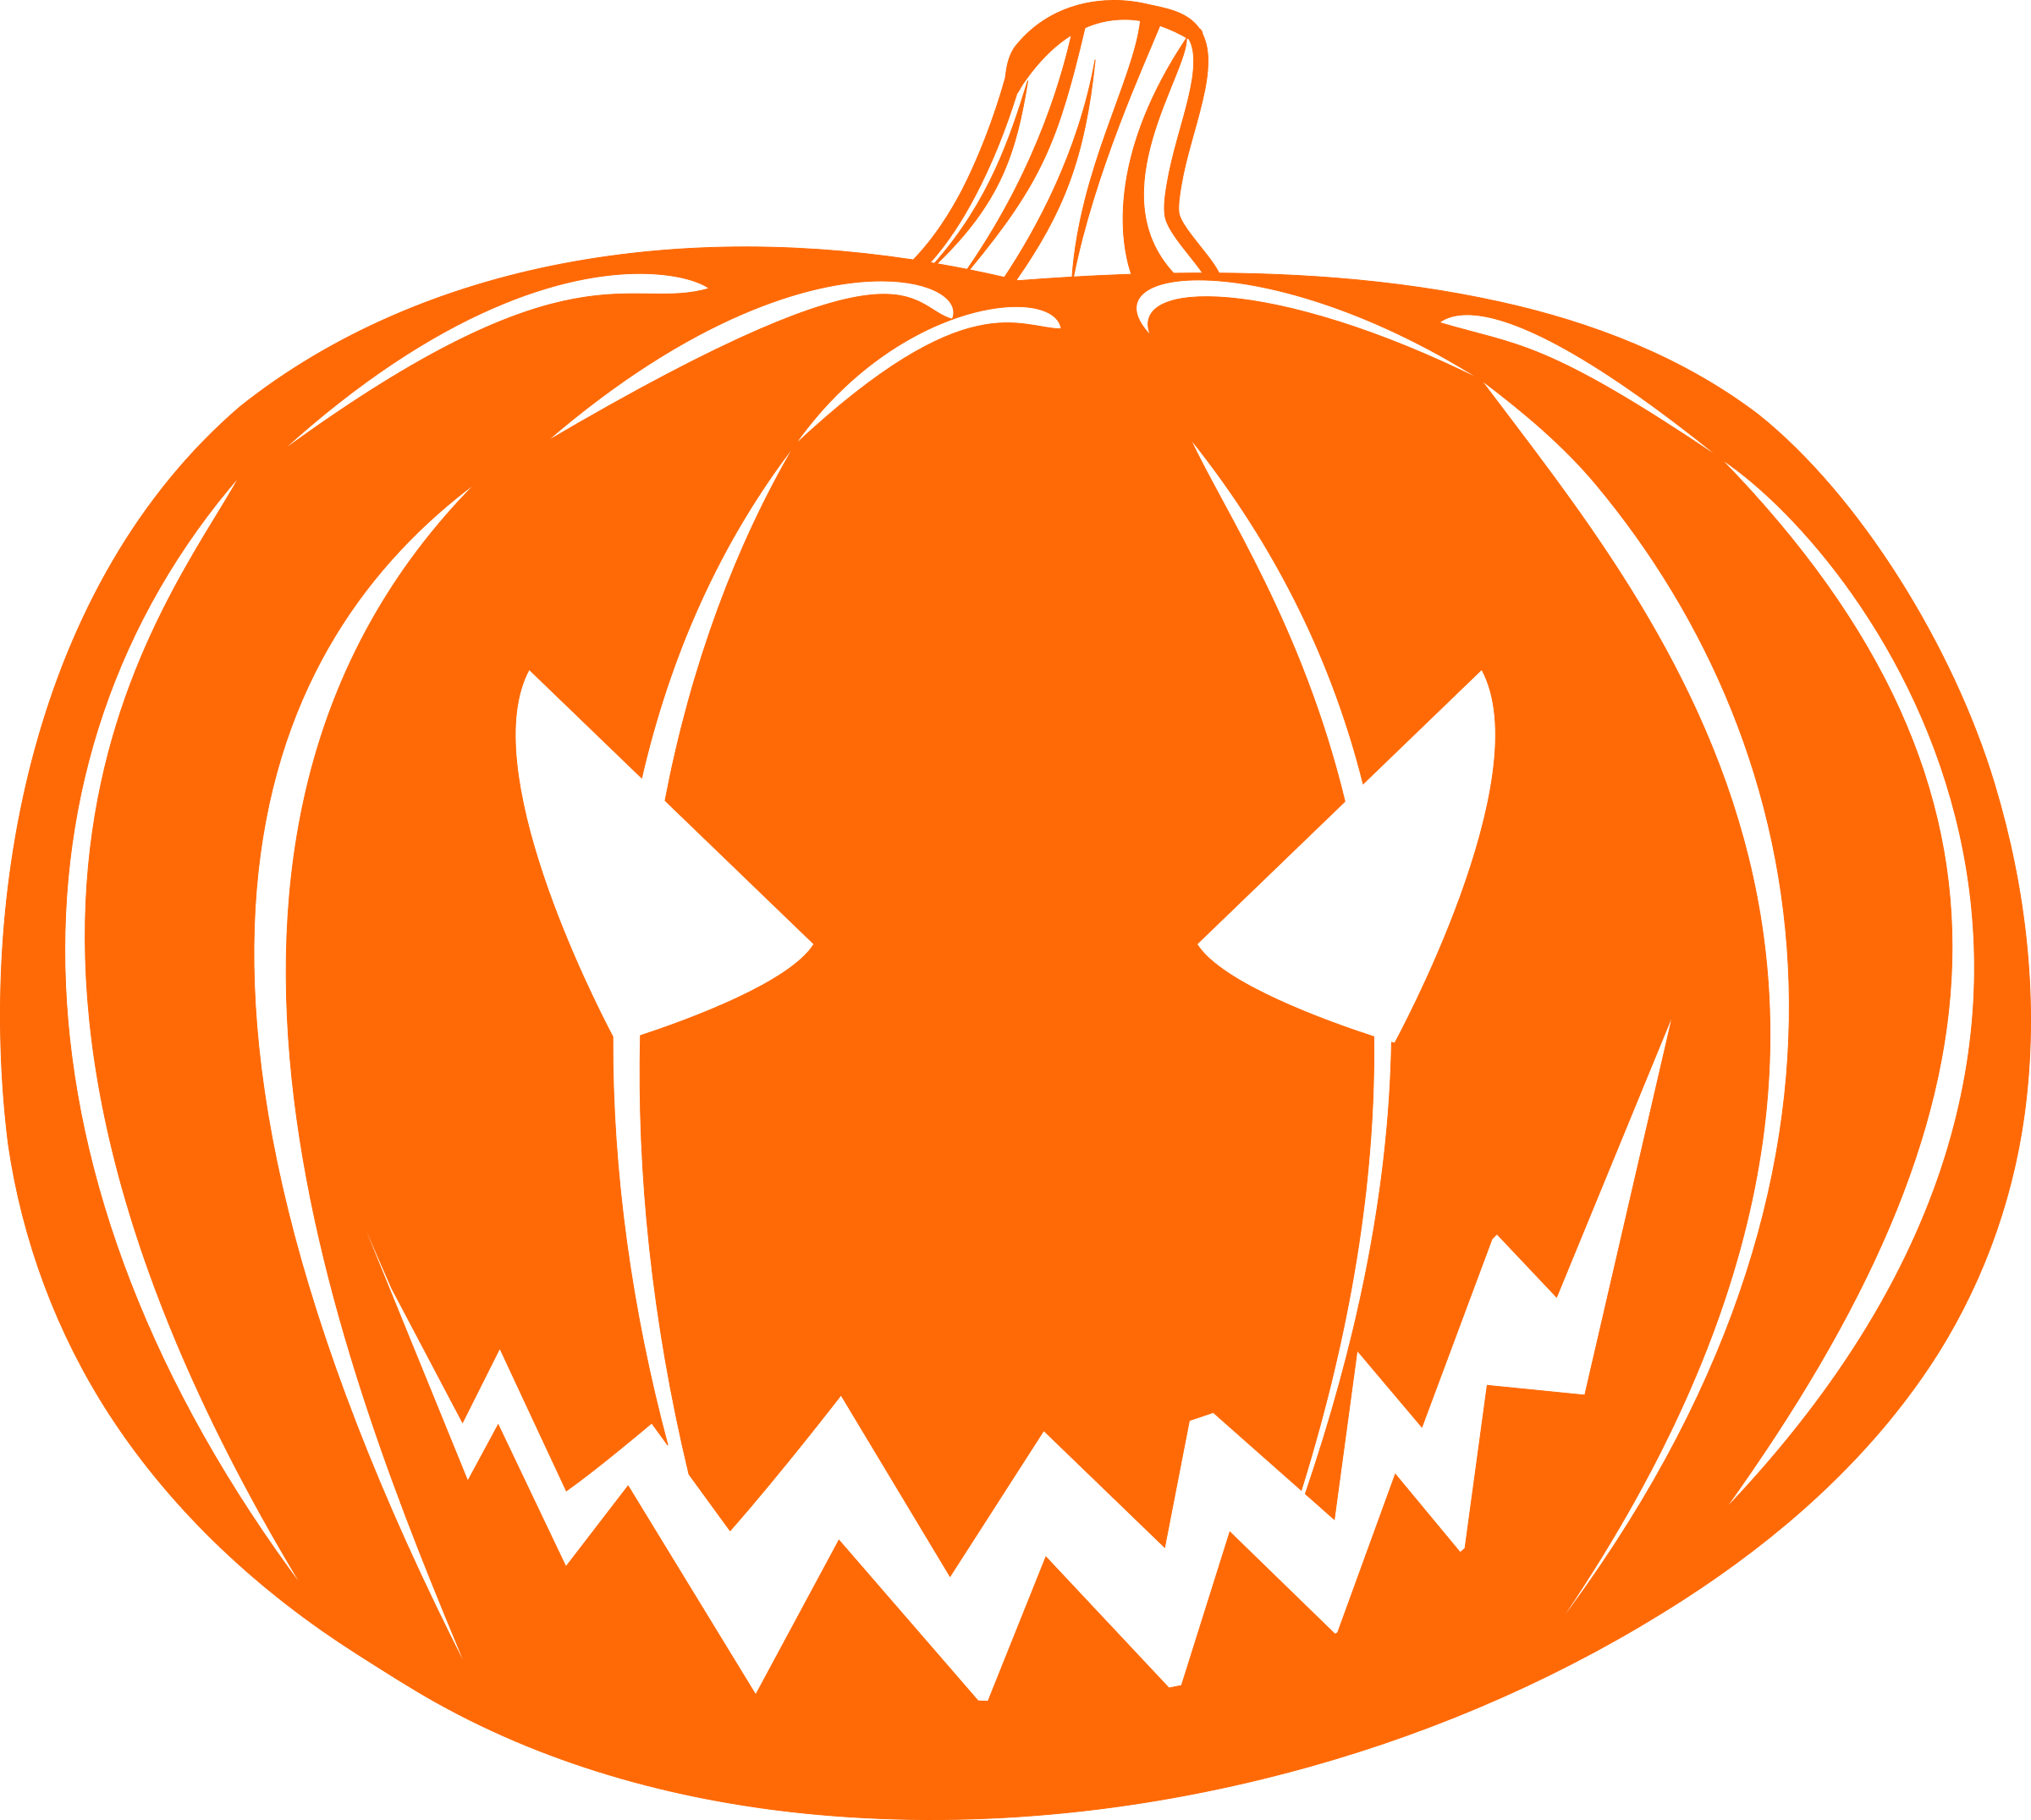 clipart scary jack o lantern rh openclipart org jackolantern clip art free jack o'lantern clipart black and white